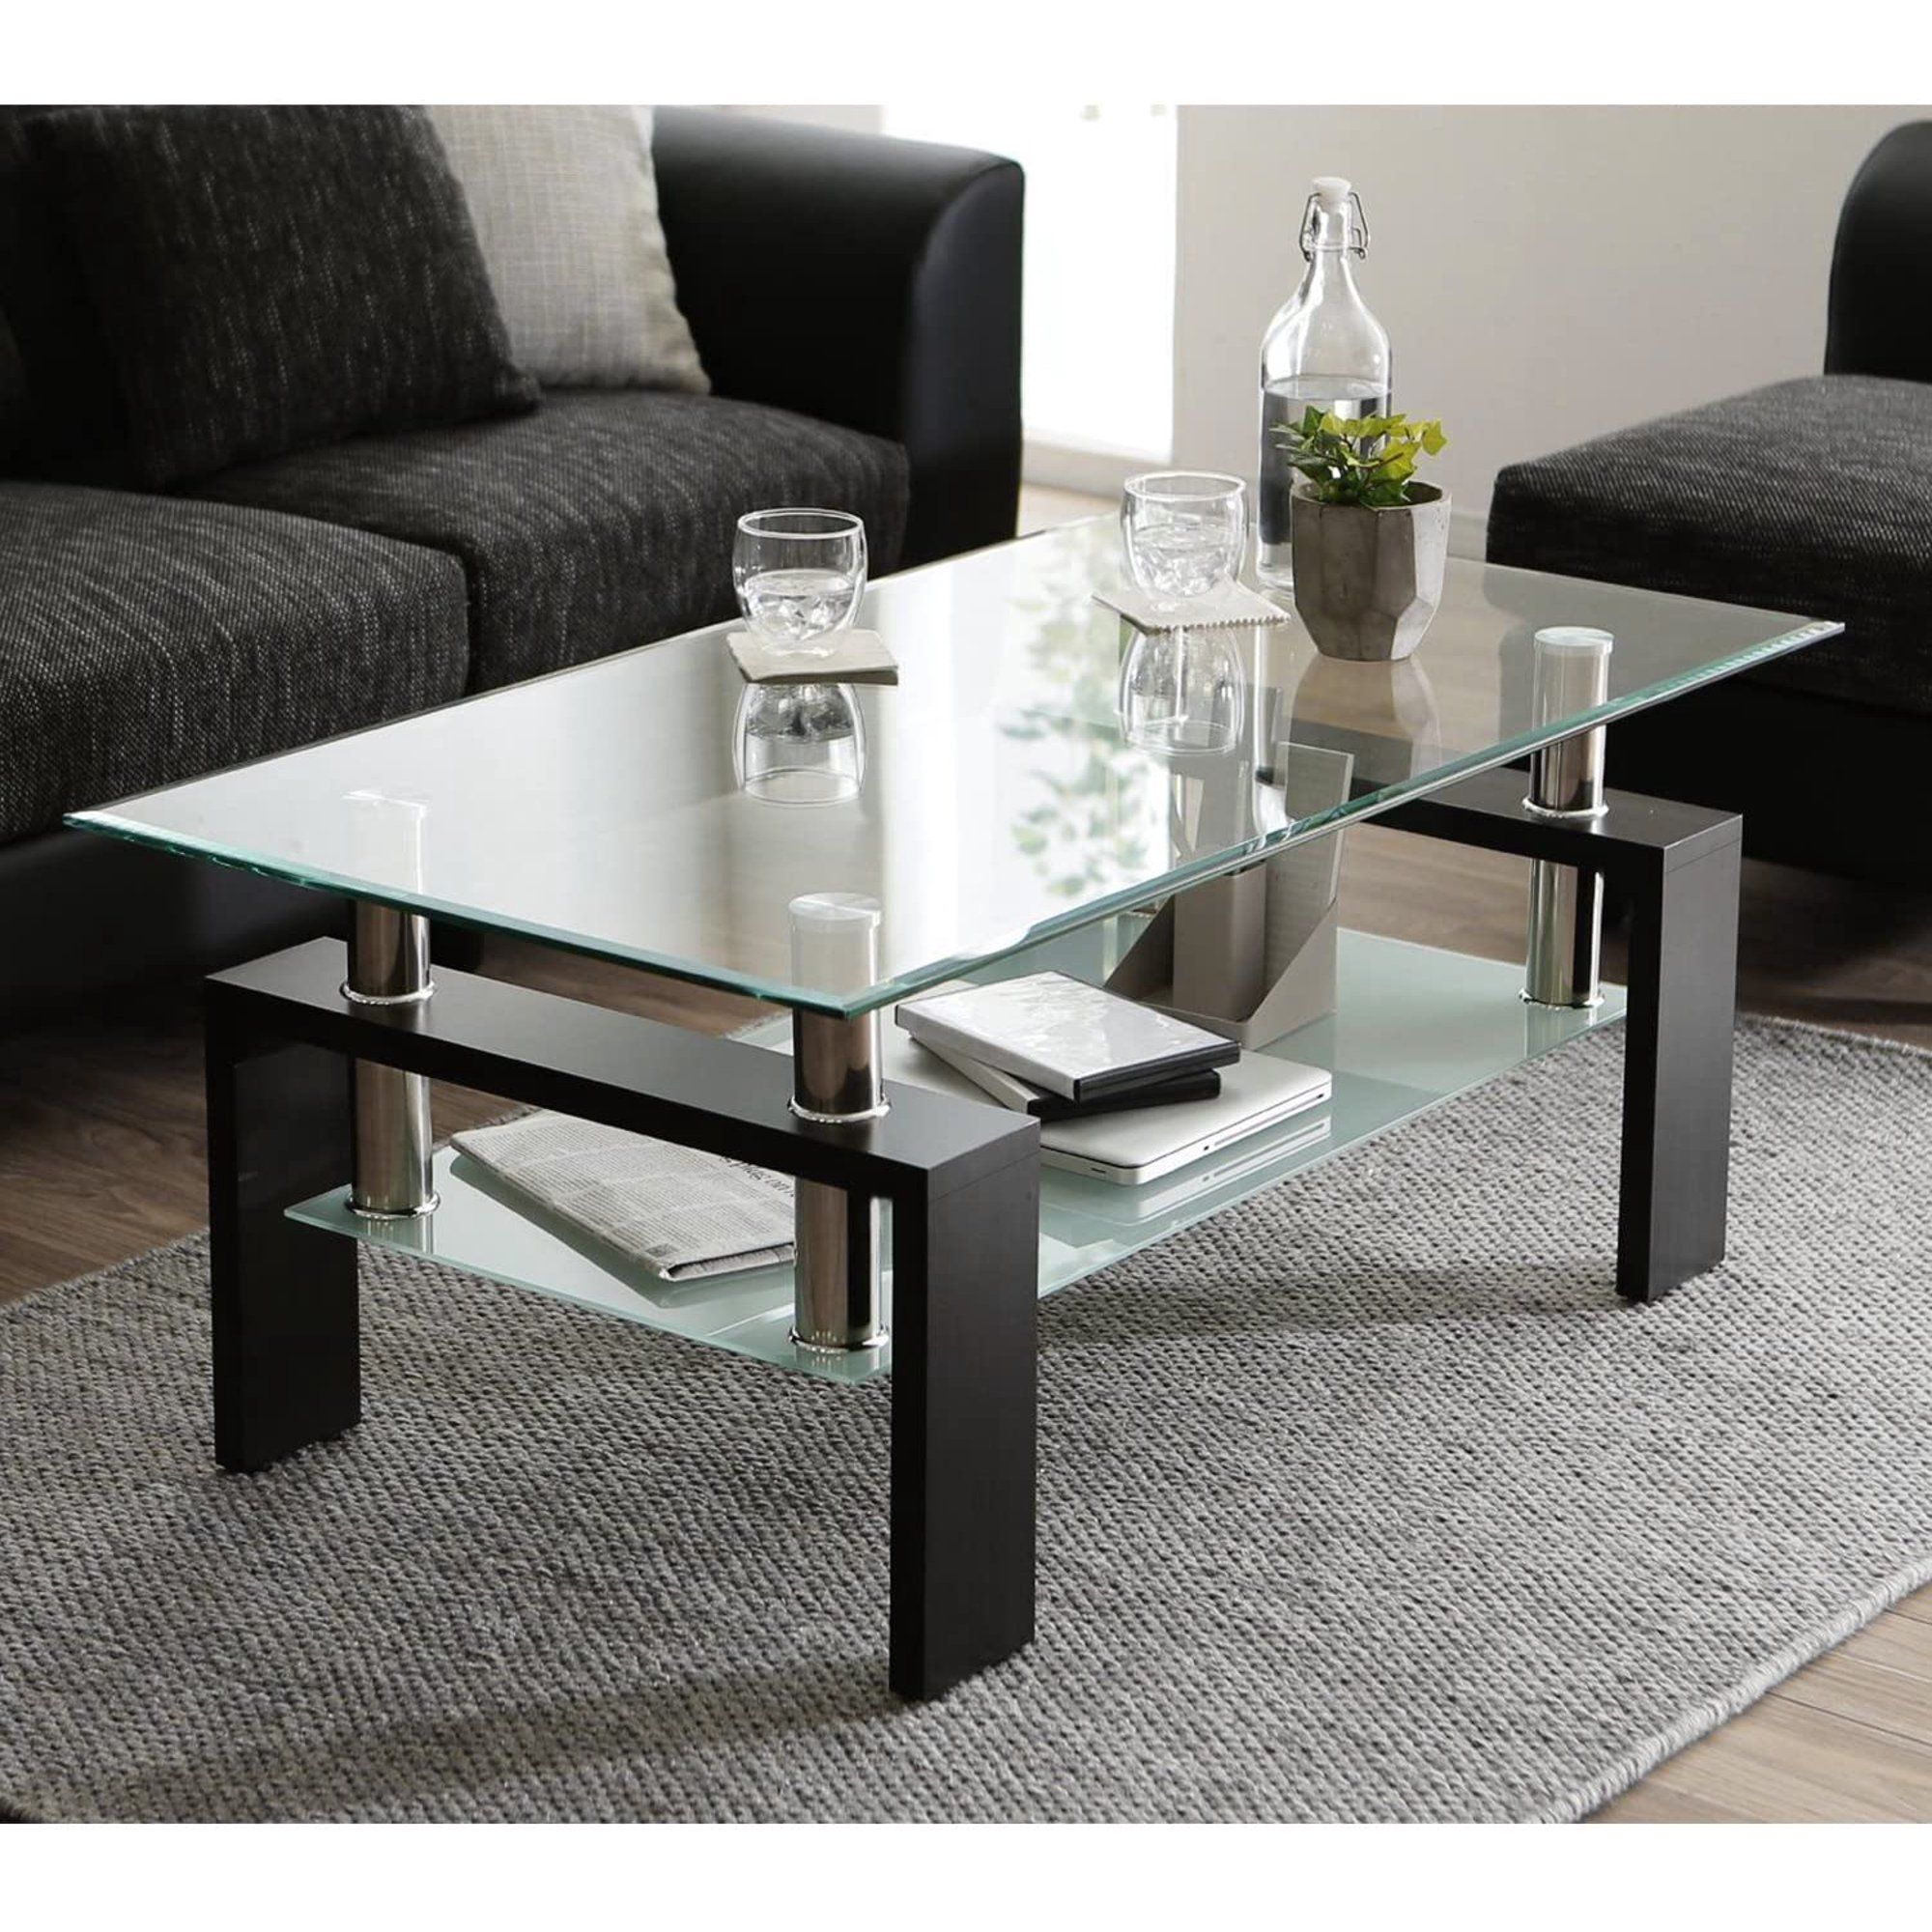 Glass Coffee Table With Lower Shelf Clear Rectangle Glass Coffee Table Modern Coffee Table With In 2021 Center Table Living Room Coffee Table Coffee Table Rectangle [ 2000 x 2000 Pixel ]